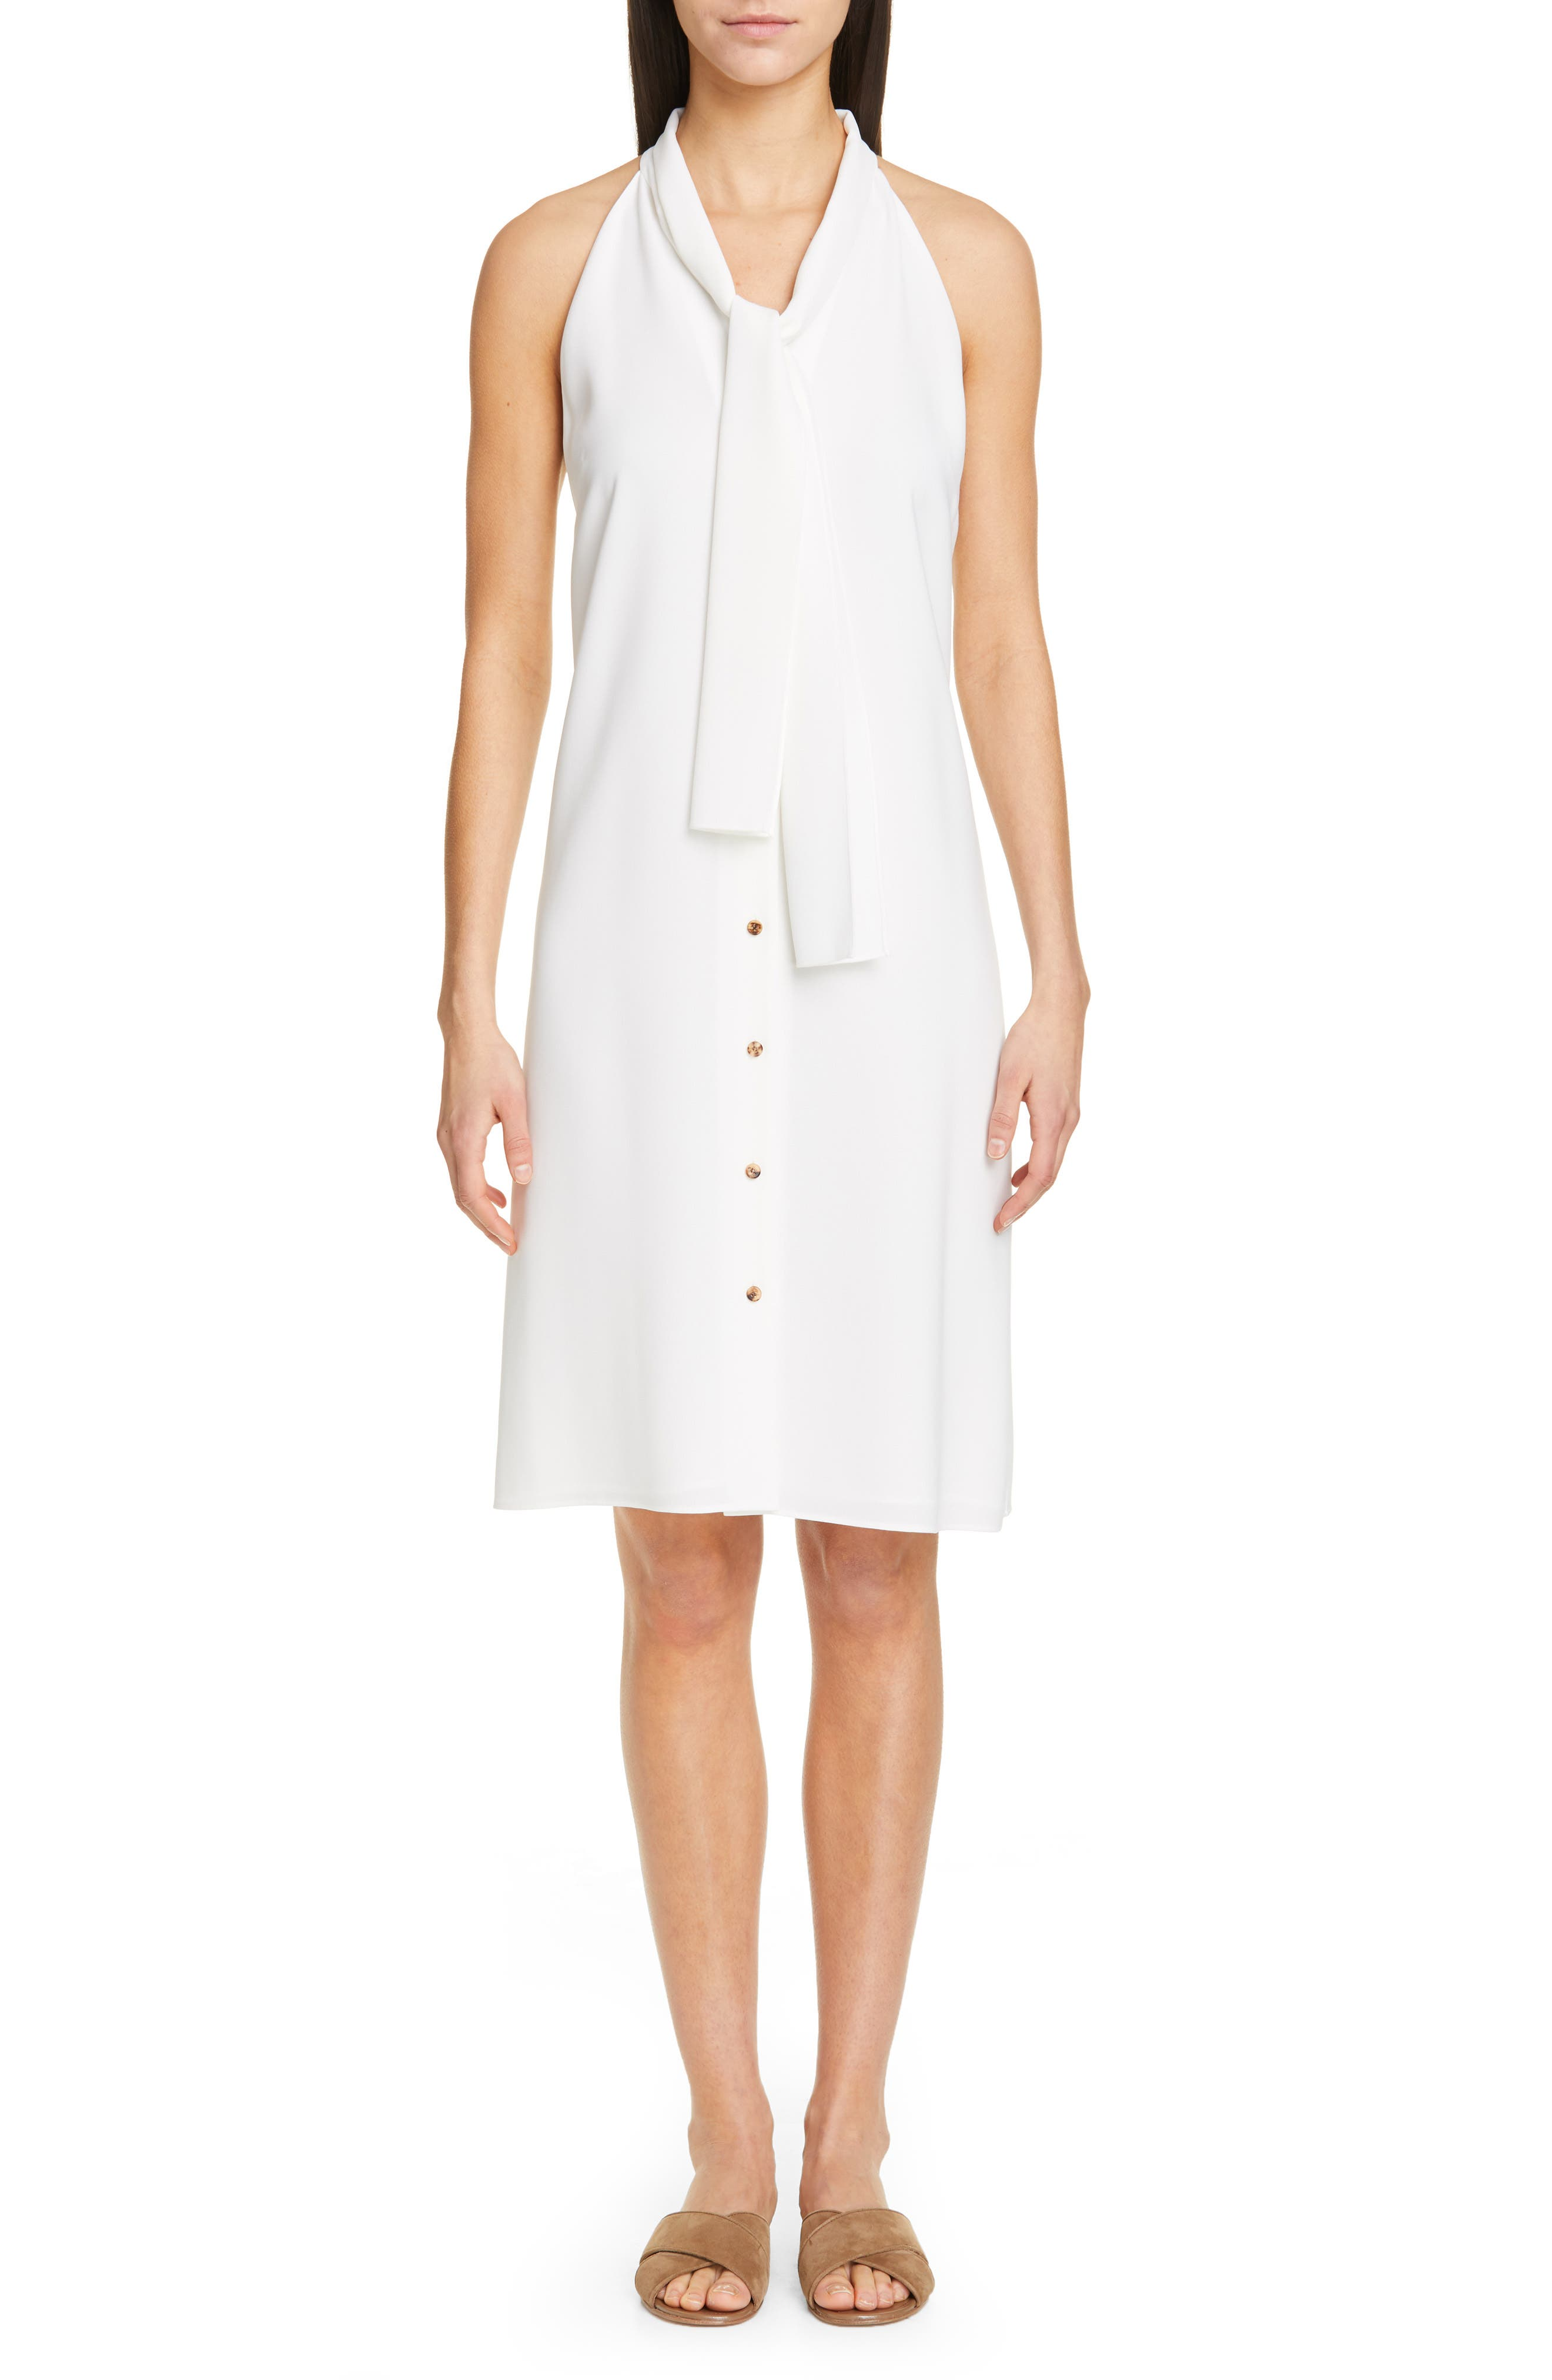 LAFAYETTE 148 NEW YORK, Amore Finesse Crepe Dress, Main thumbnail 1, color, CLOUD